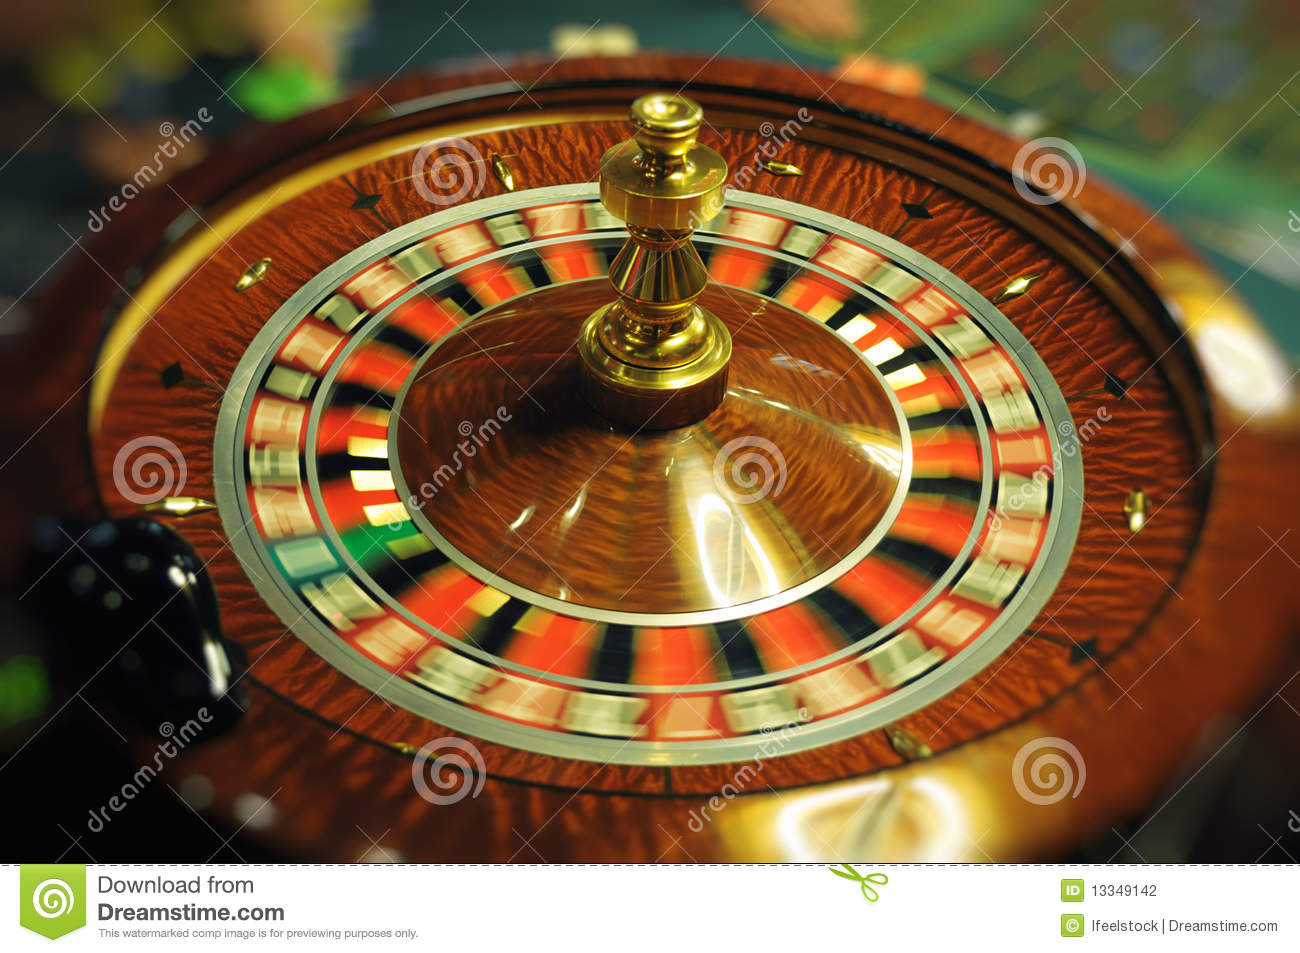 casino spin games